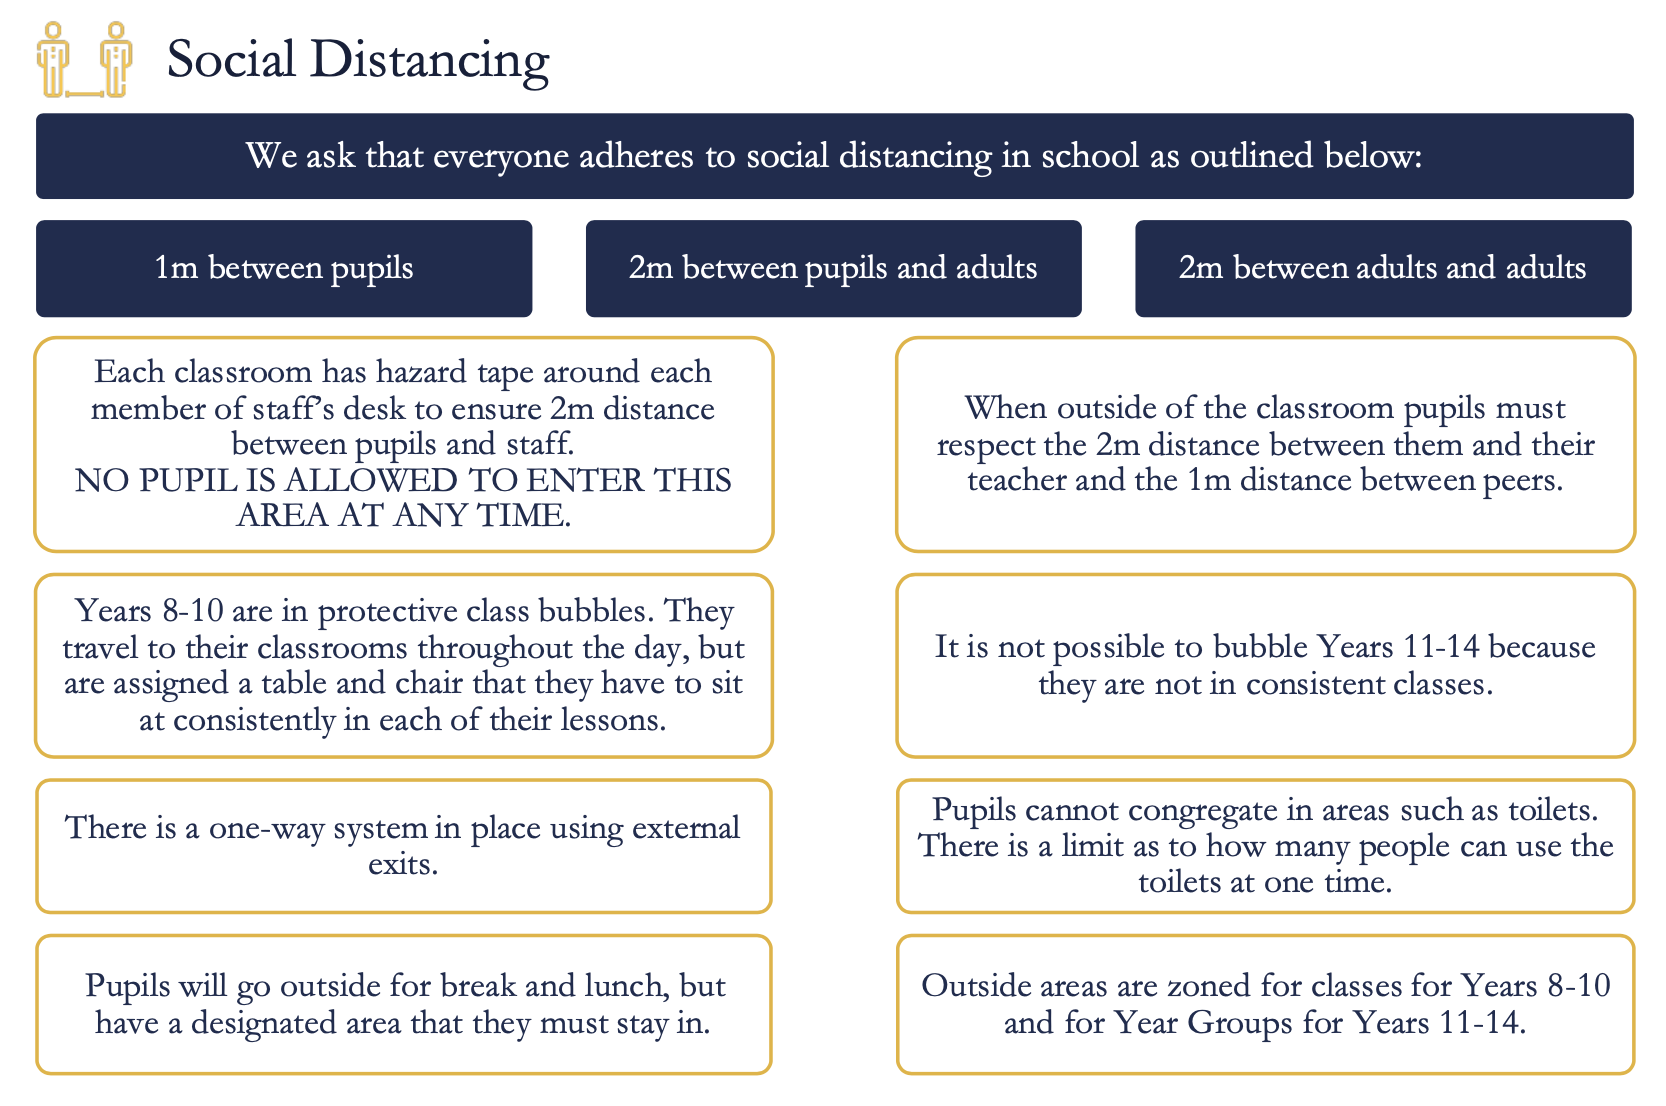 Covid Social Distancing Guidance